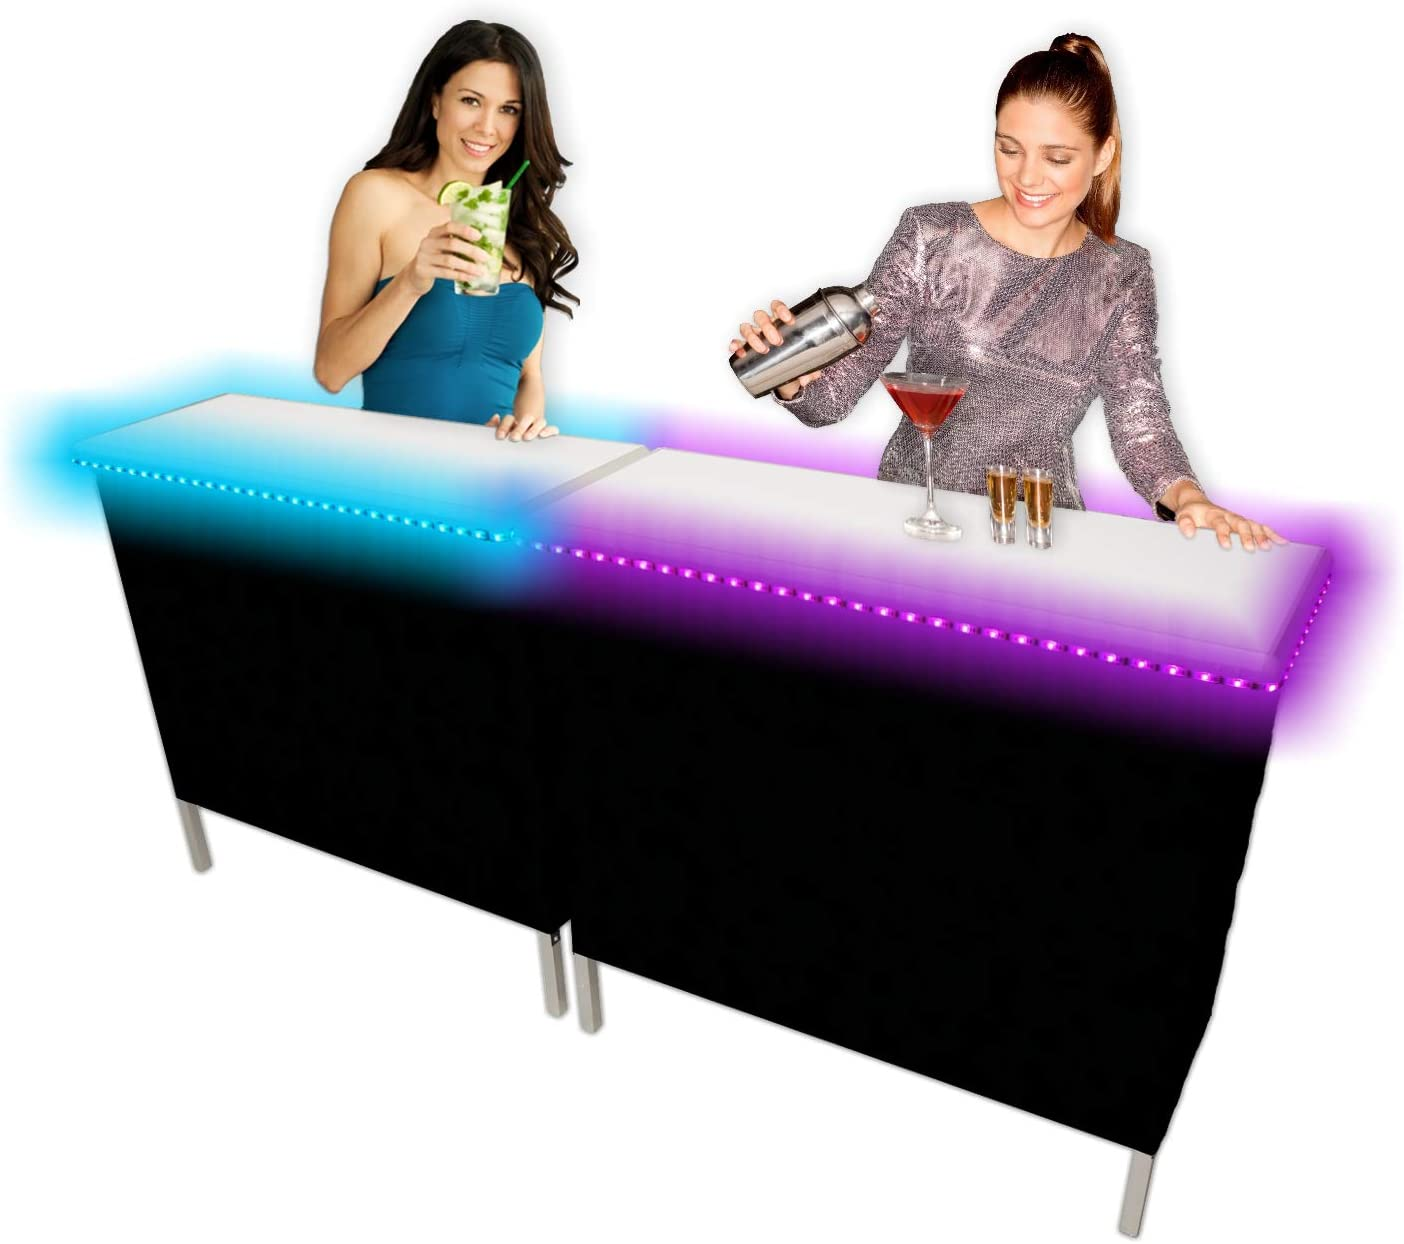 PartyPongTables.com Set Portable Black & Hawaiian Skirts, 39 inches, Party Bar w/LED Lights - Double